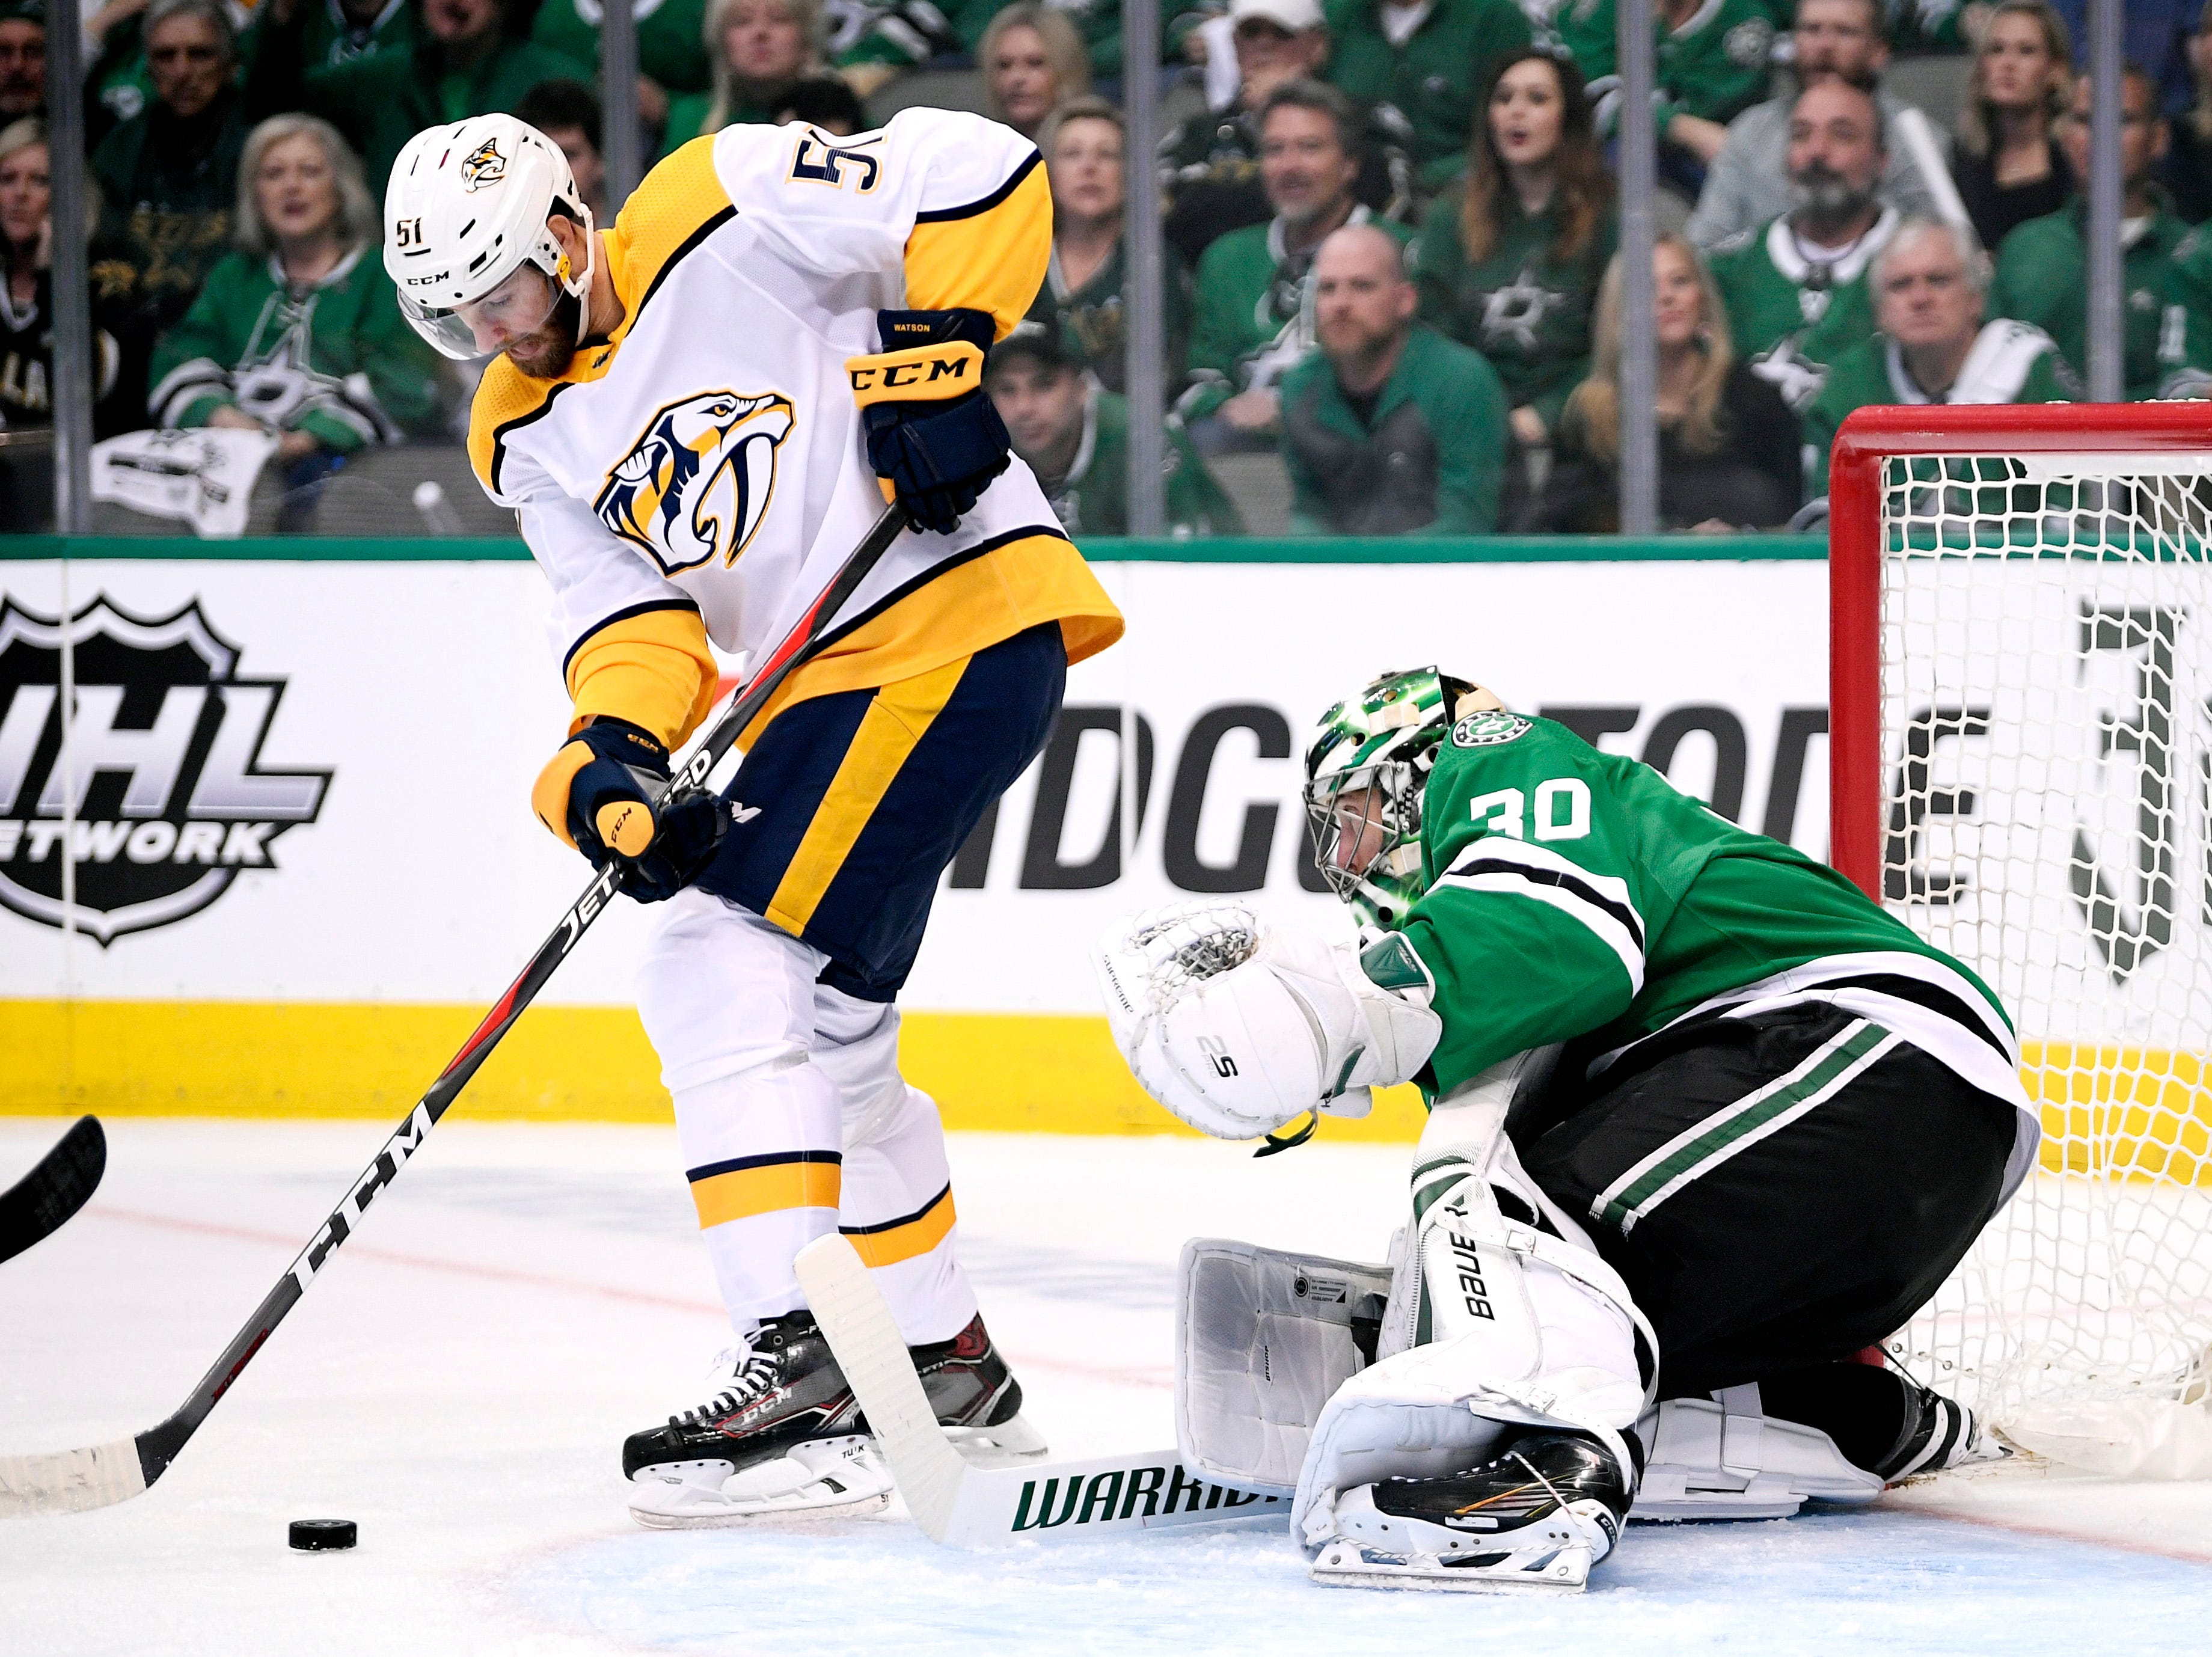 Nashville Predators left wing Austin Watson (51) plays the puck in front of Dallas Stars goaltender Ben Bishop (30) during the first period of the divisional semifinal game at the American Airlines Center in Dallas, Texas., Monday, April 15, 2019.